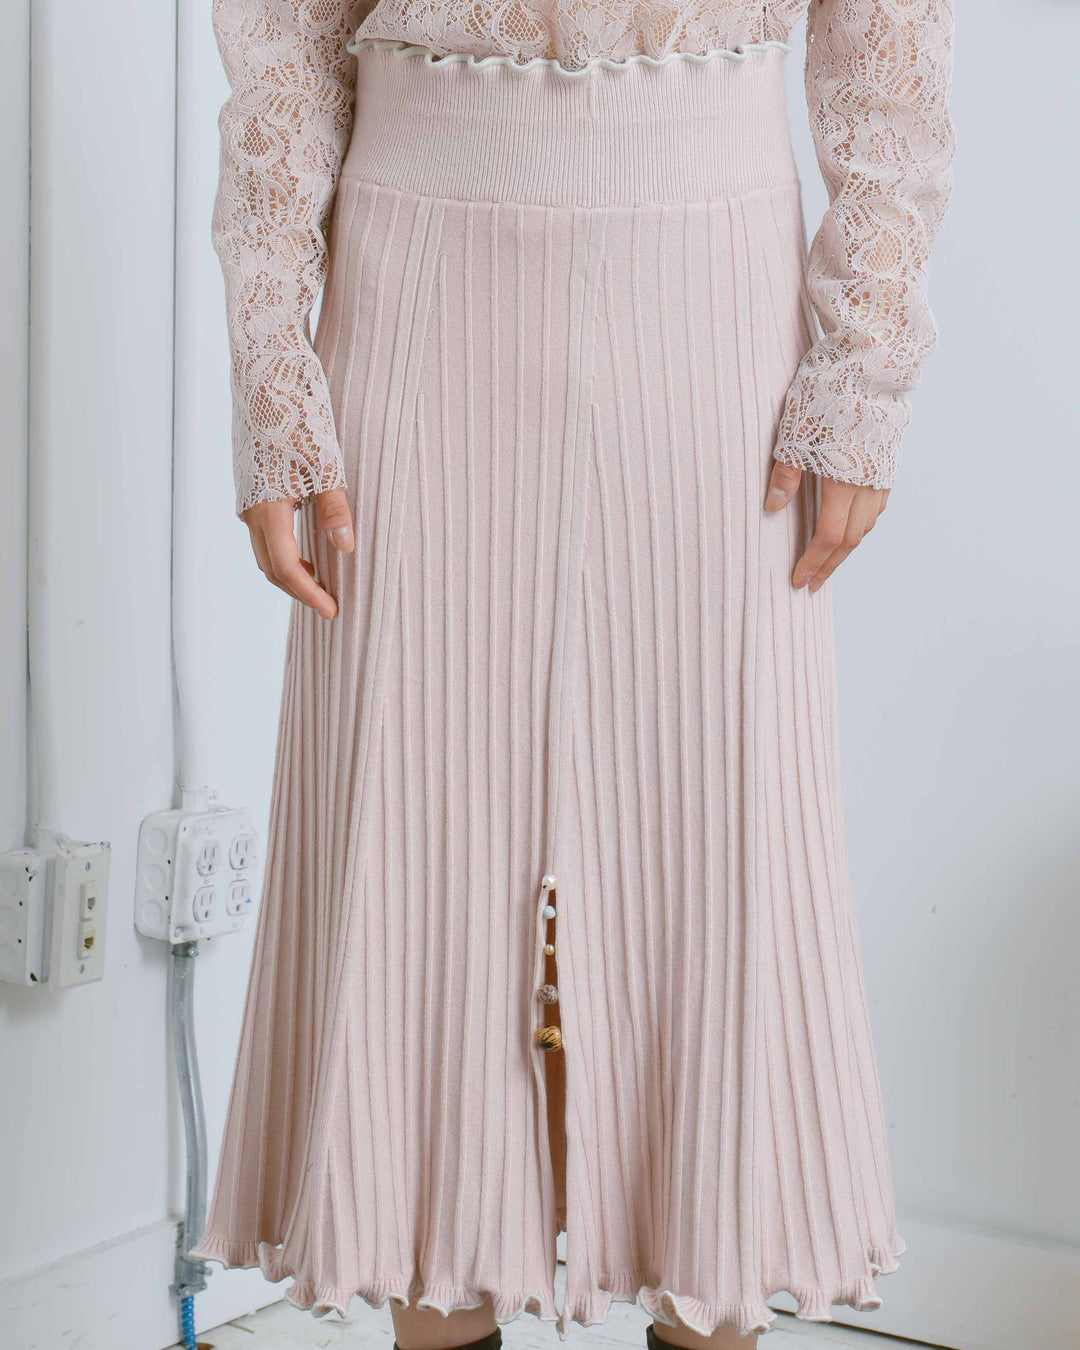 Chalice Knit Skirt